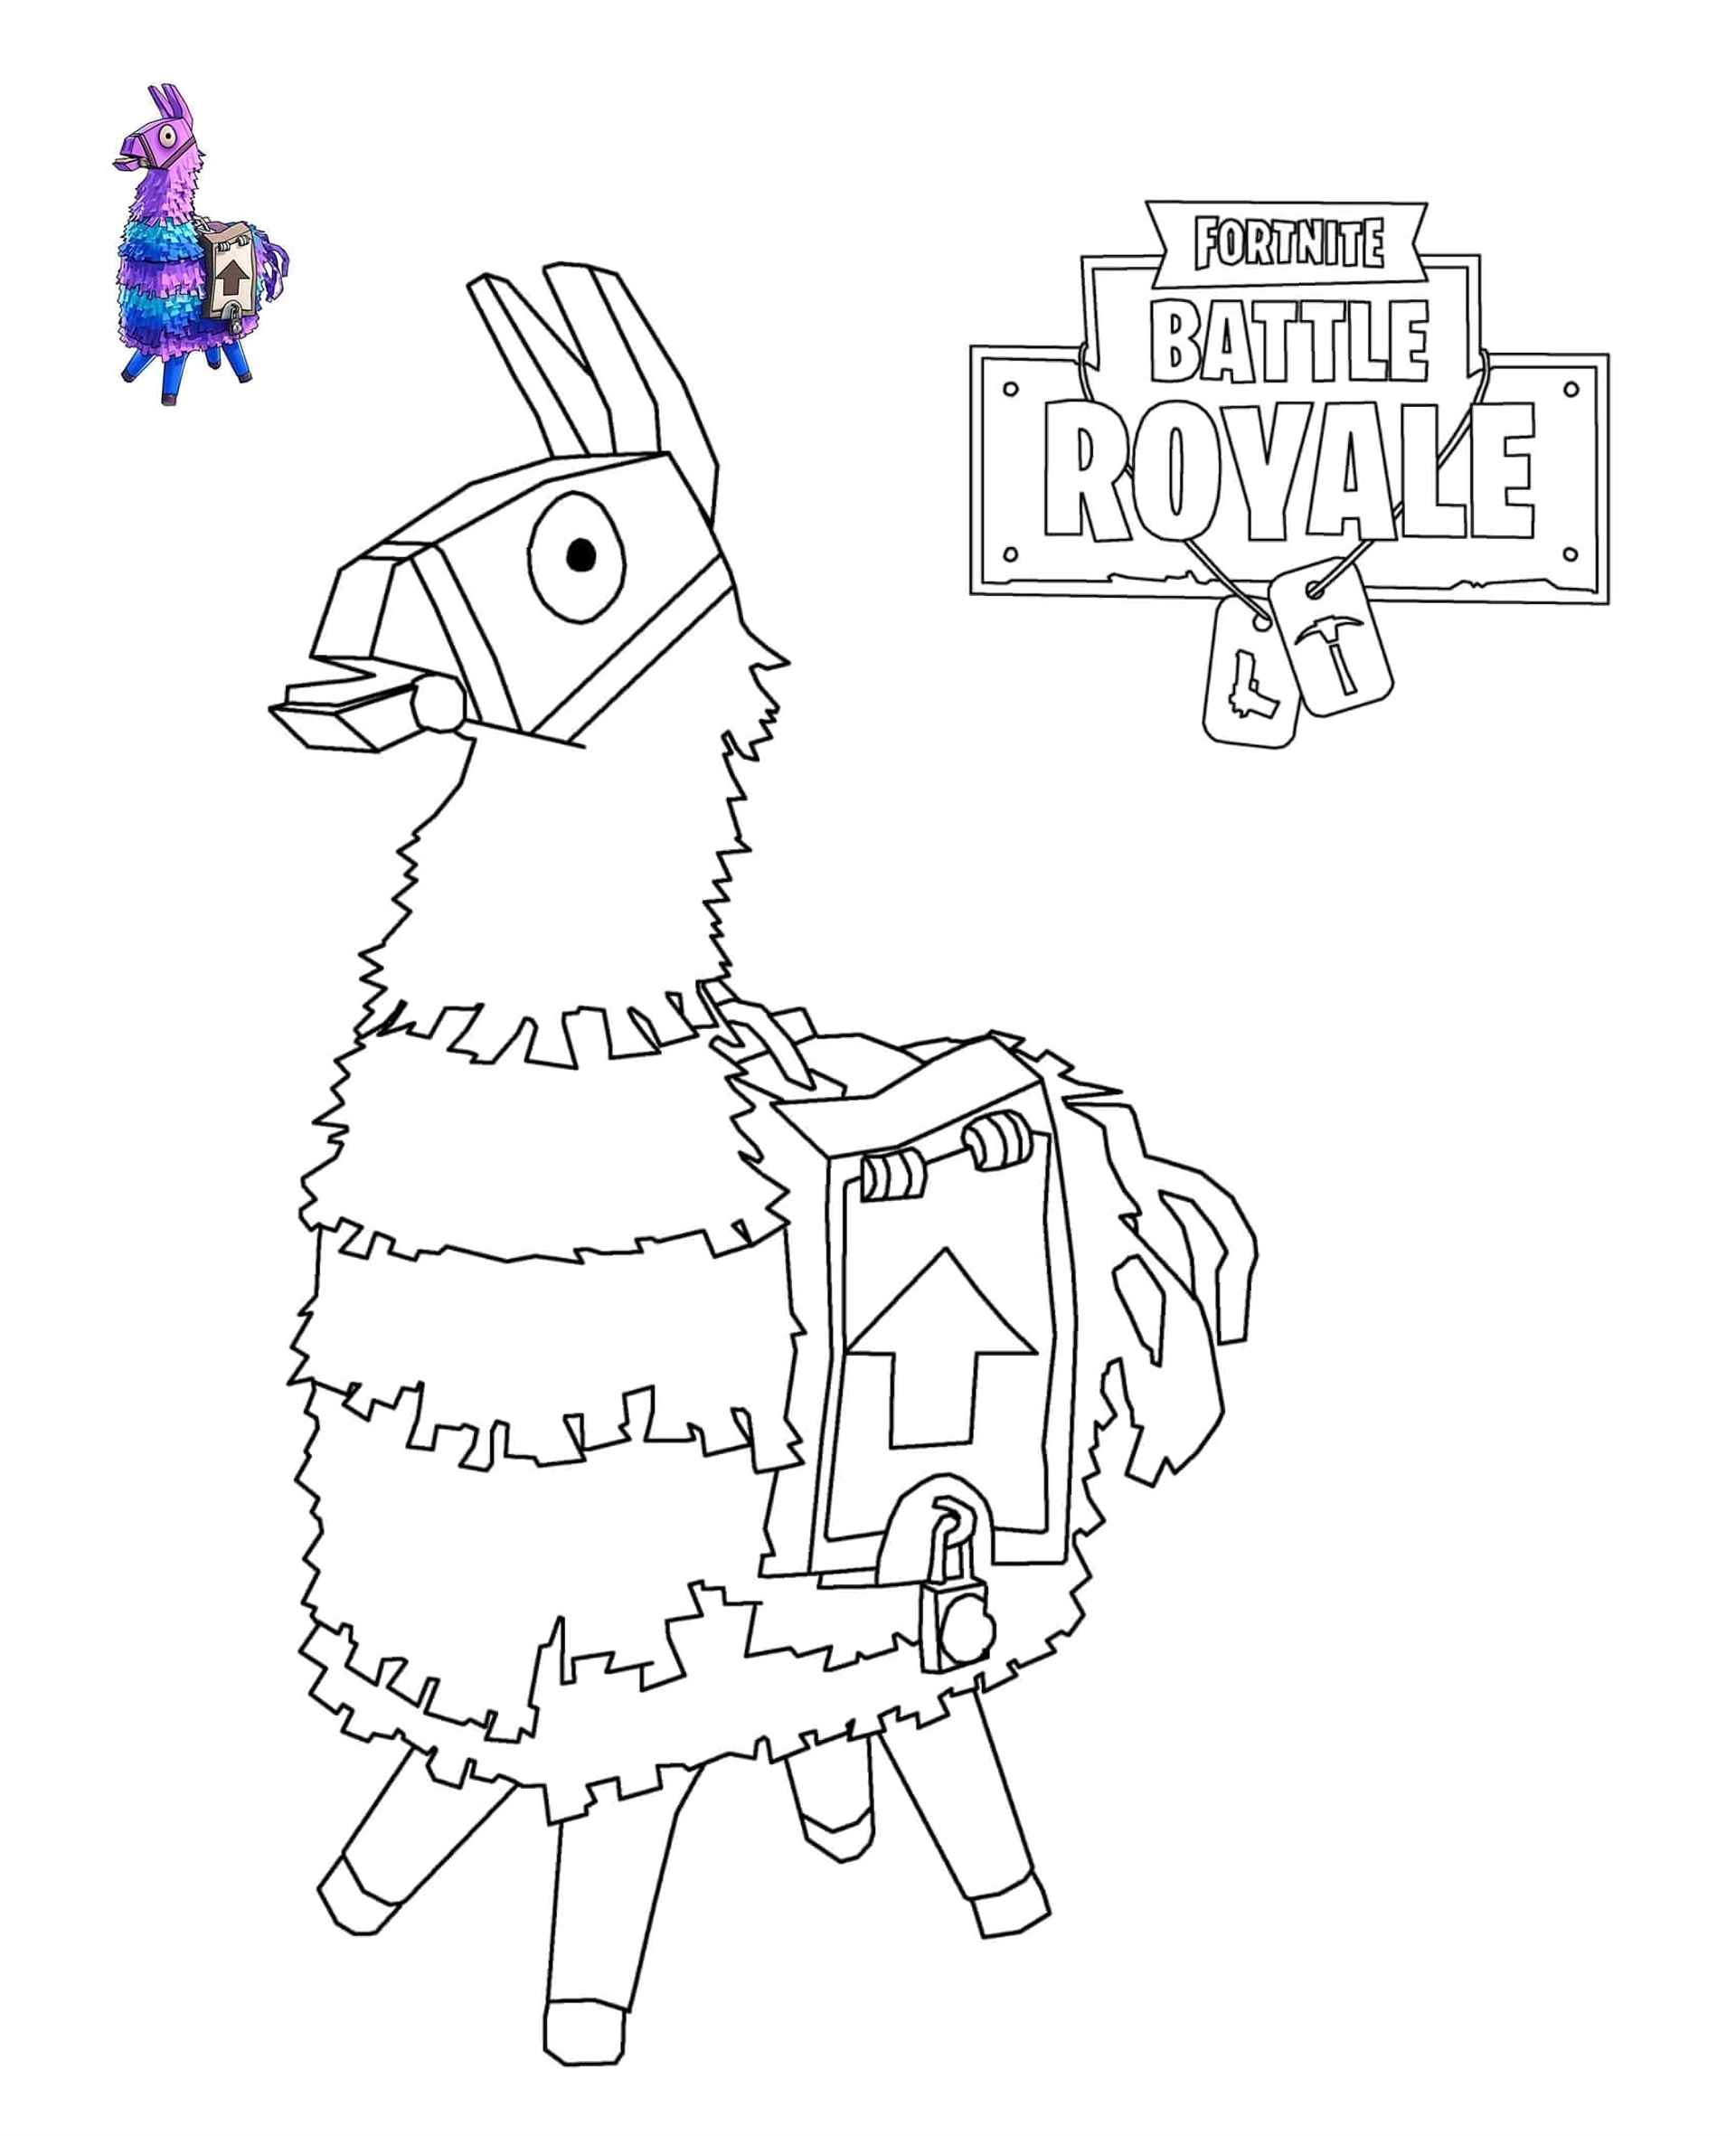 Coloring Page Of A Pinata From The Game Fortnite